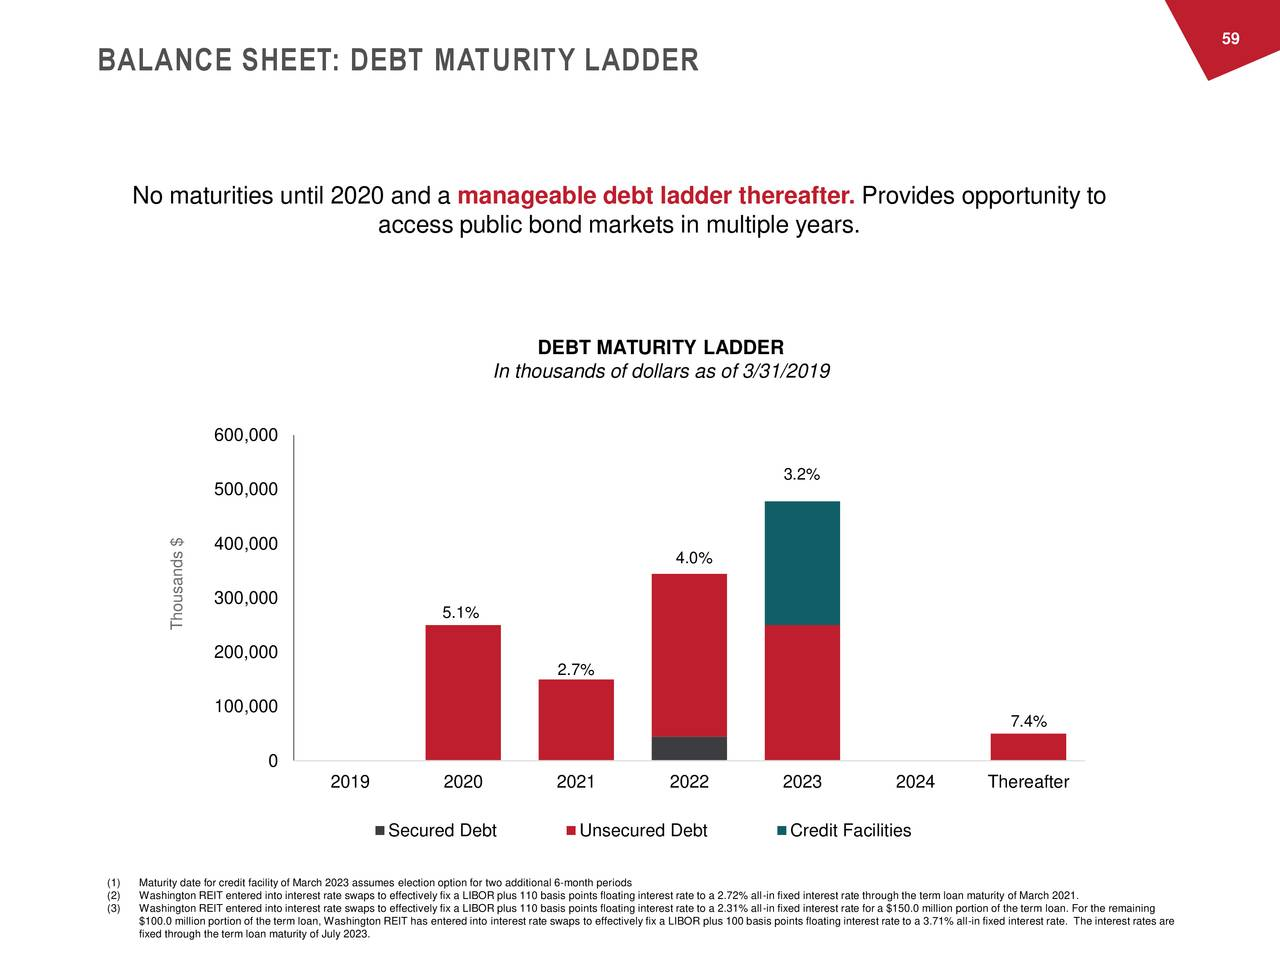 BALANCE SHEET: DEBT MATURITY LADDER No maturities until 2020 and a manageable debt ladder thereafter. Provides opportunity to access public bond markets in multiple years. DEBT MATURITY LADDER In thousands of dollars as of 3/31/2019 600,000 3.2% 500,000 400,000 4.0% 300,000 Thousands $ 5.1% 200,000 2.7% 100,000 7.4% 0 2019 2020 2021 2022 2023 2024 Thereafter Secured Debt Unsecured Debt Credit Facilities (1) Maturity date for credit facility of March 2023 assumes election option for two additional 6-month periods (2) Washington REIT entered into interest rate swaps to effectively fix a LIBOR plus 110 basis points floating interest rate to a 2.72% all-in fixed interest rate through the term loan maturity of March 2021. (3) Washington REIT entered into interest rate swaps to effectively fix a LIBOR plus 110 basis points floating interest rate to a 2.31% all-in fixed interest rate for a $150.0 million portion of the term loan. For the remaining $100.0 million portion of the term loan, Washington REIT has entered into interest rate swaps to effectively fix a LIBOR plus 100 basis points floating interest rate to a 3.71% all-in fixed interest rate. The interest rates are fixed through the term loan maturity of July 2023.